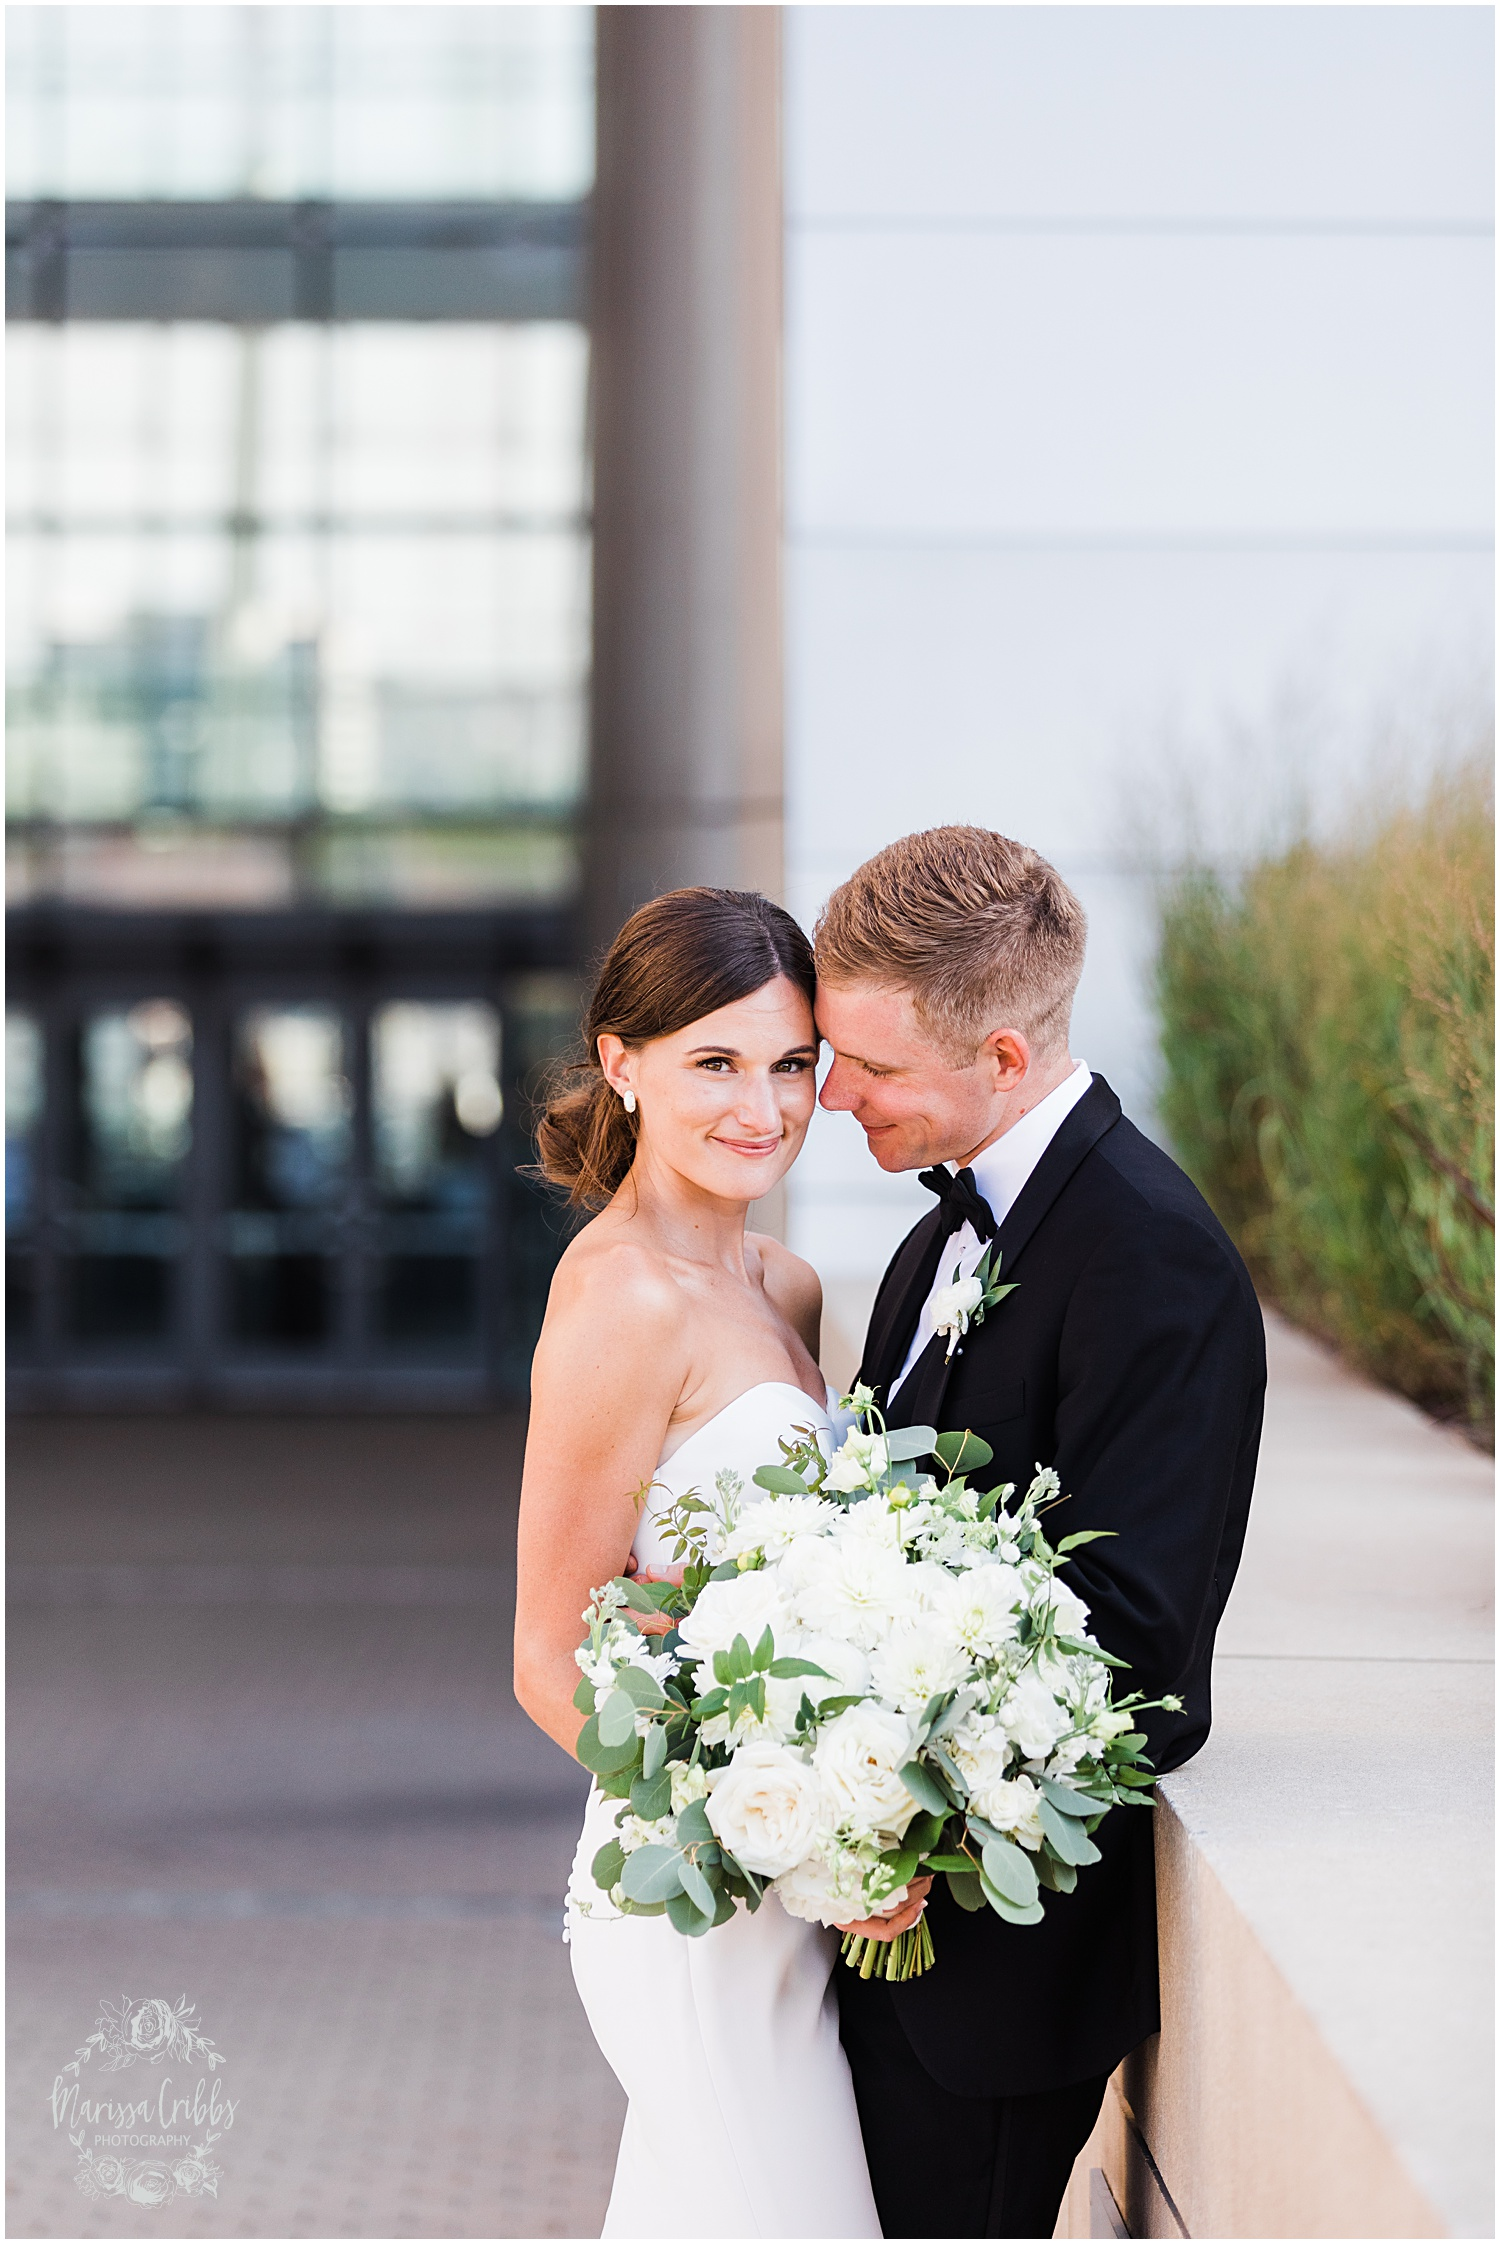 JOANNE & GEORGE MARRIED BLOG | MARISSA CRIBBS PHOTOGRAPHY | THE ABBOTT | KANSAS CITY WEDDING PHOTOS_9102.jpg